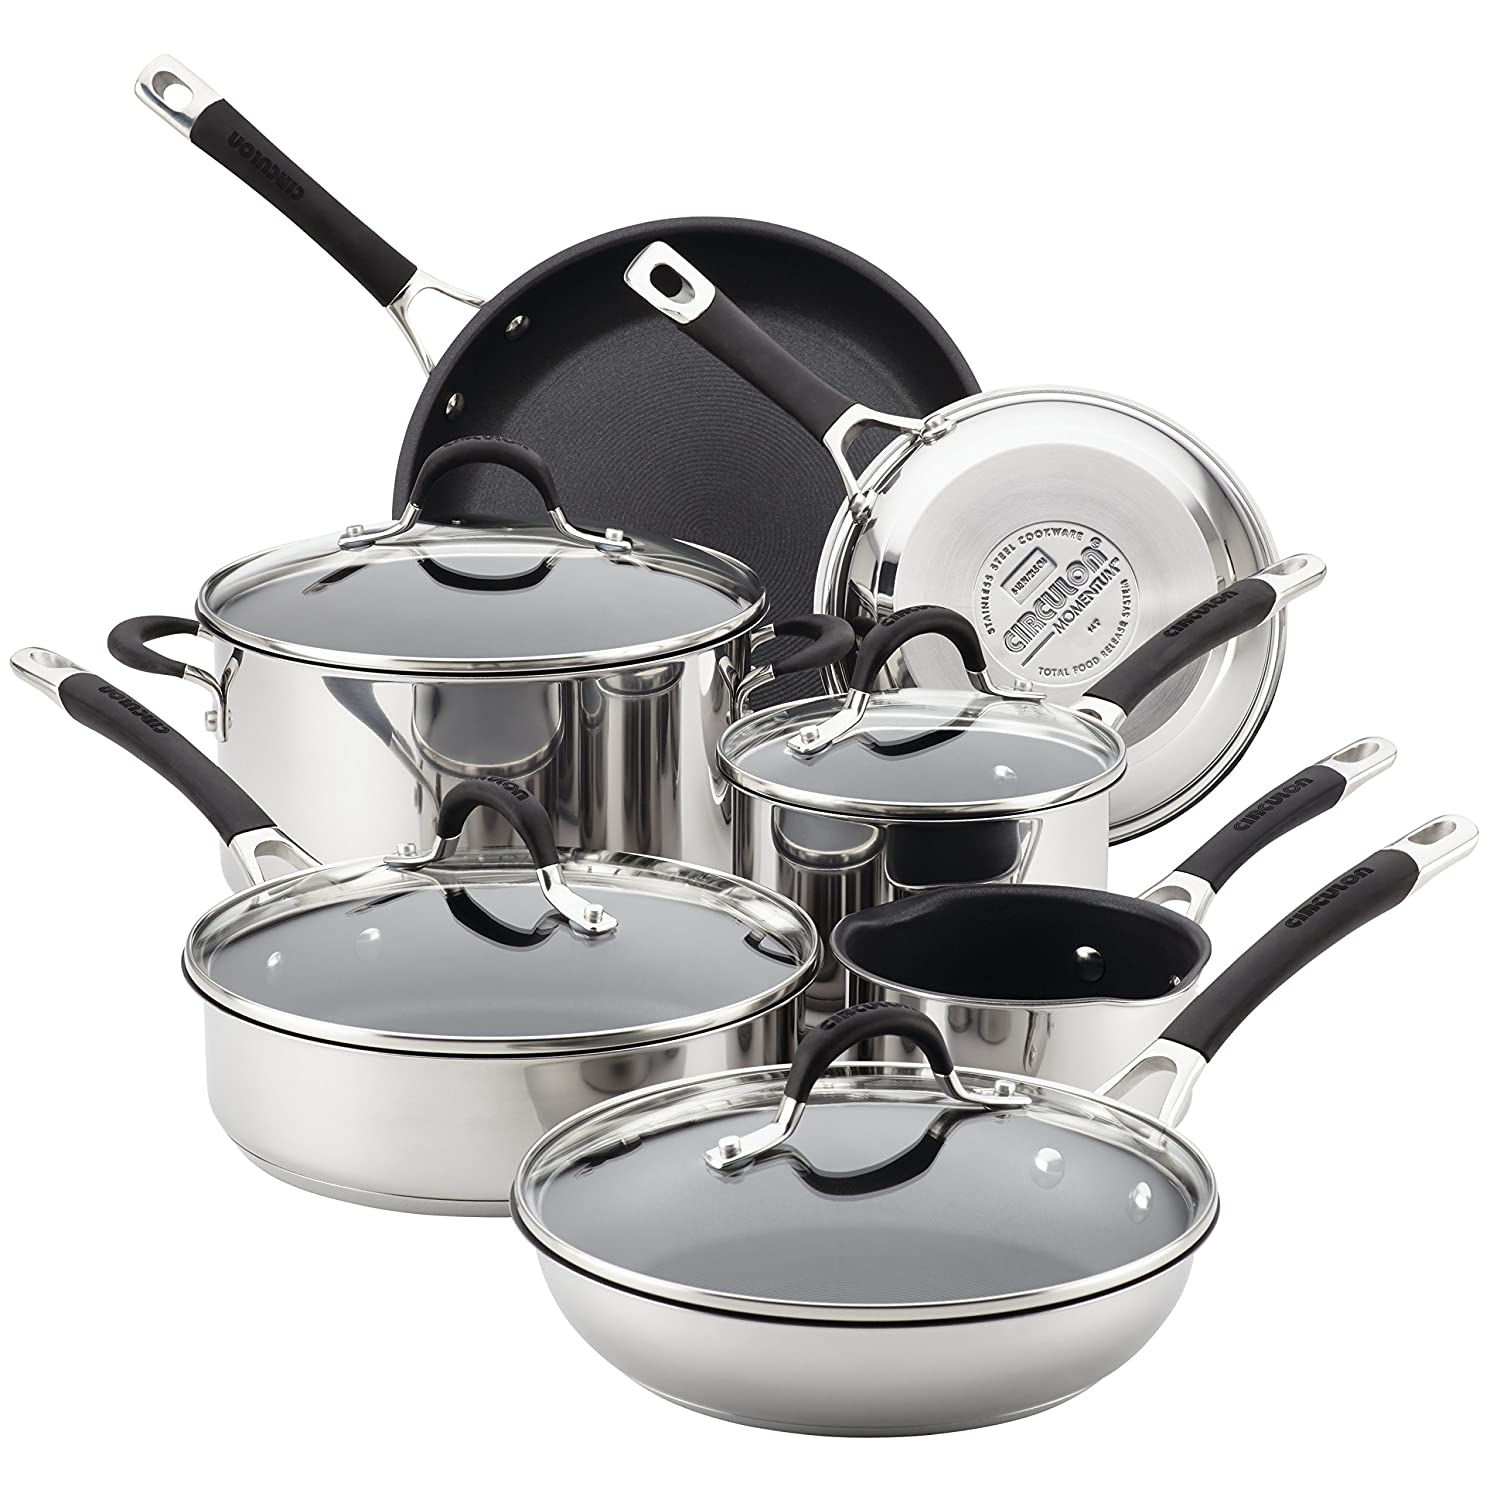 Circulon Momentum Stainless Steel Nonstick Cookware Set